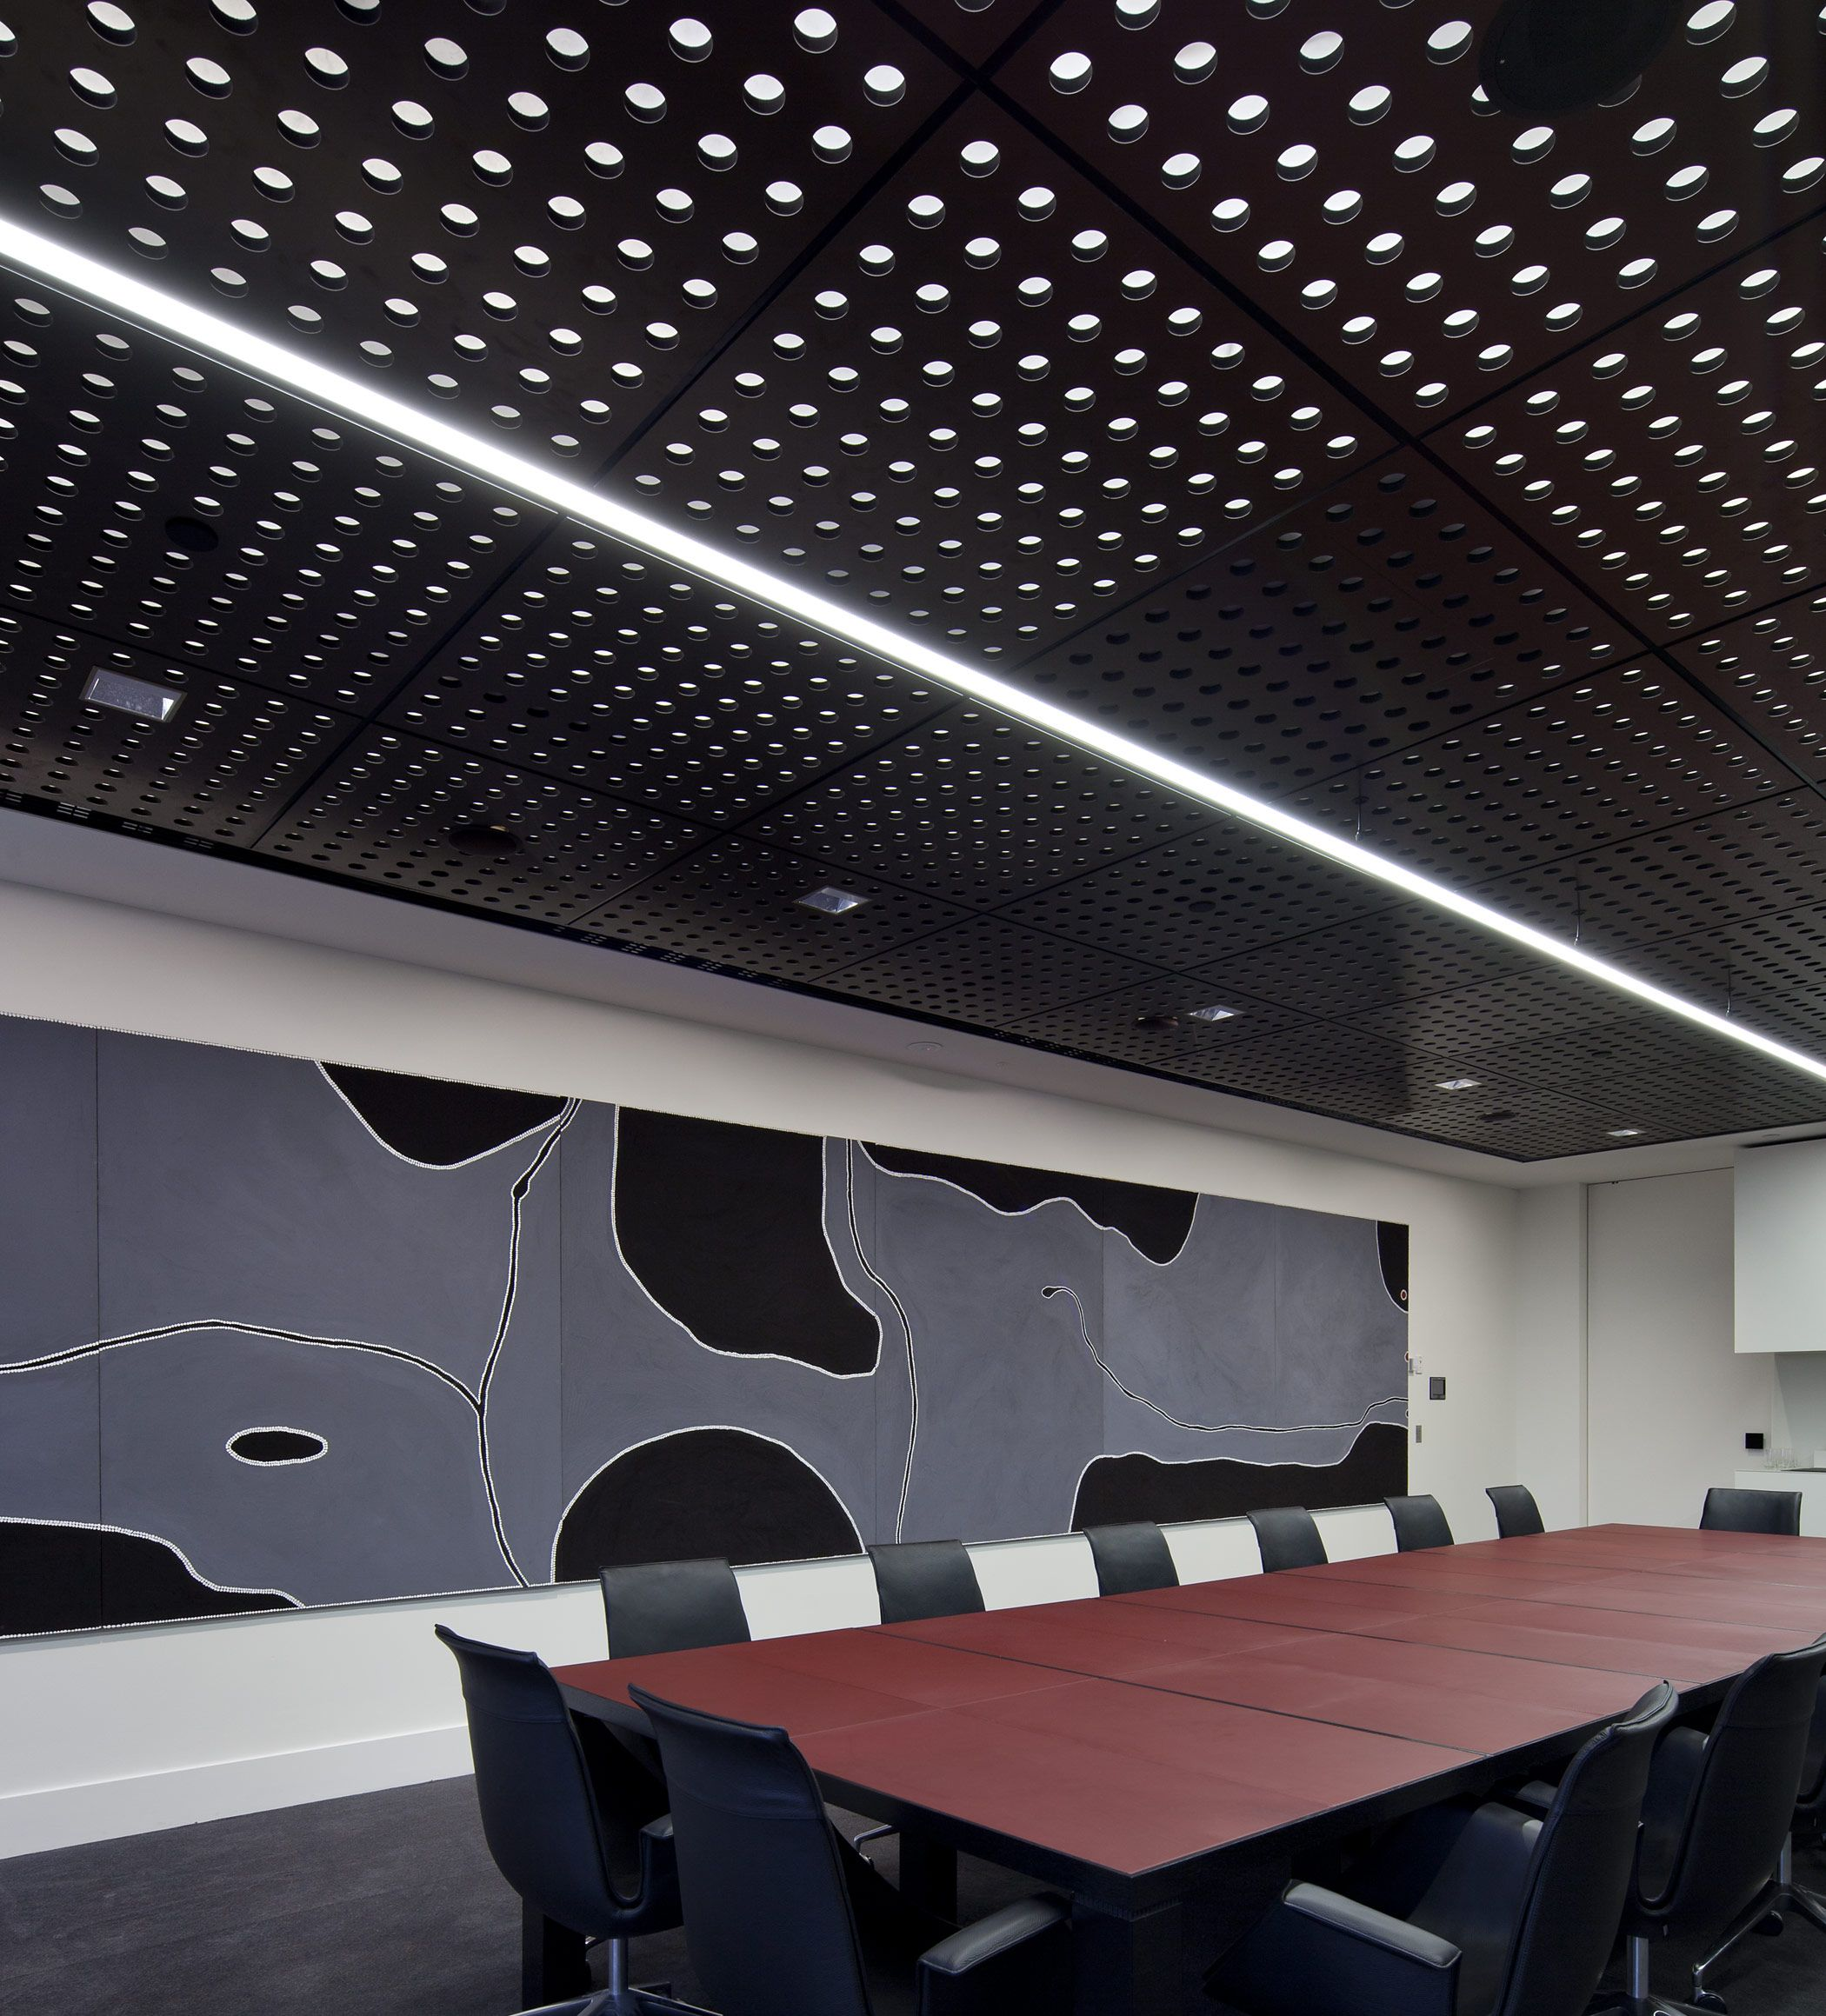 Auditile timber acoustic ceiling tiles atkar deco pinterest ditile timber acoustic ceiling tiles atkar dailygadgetfo Image collections